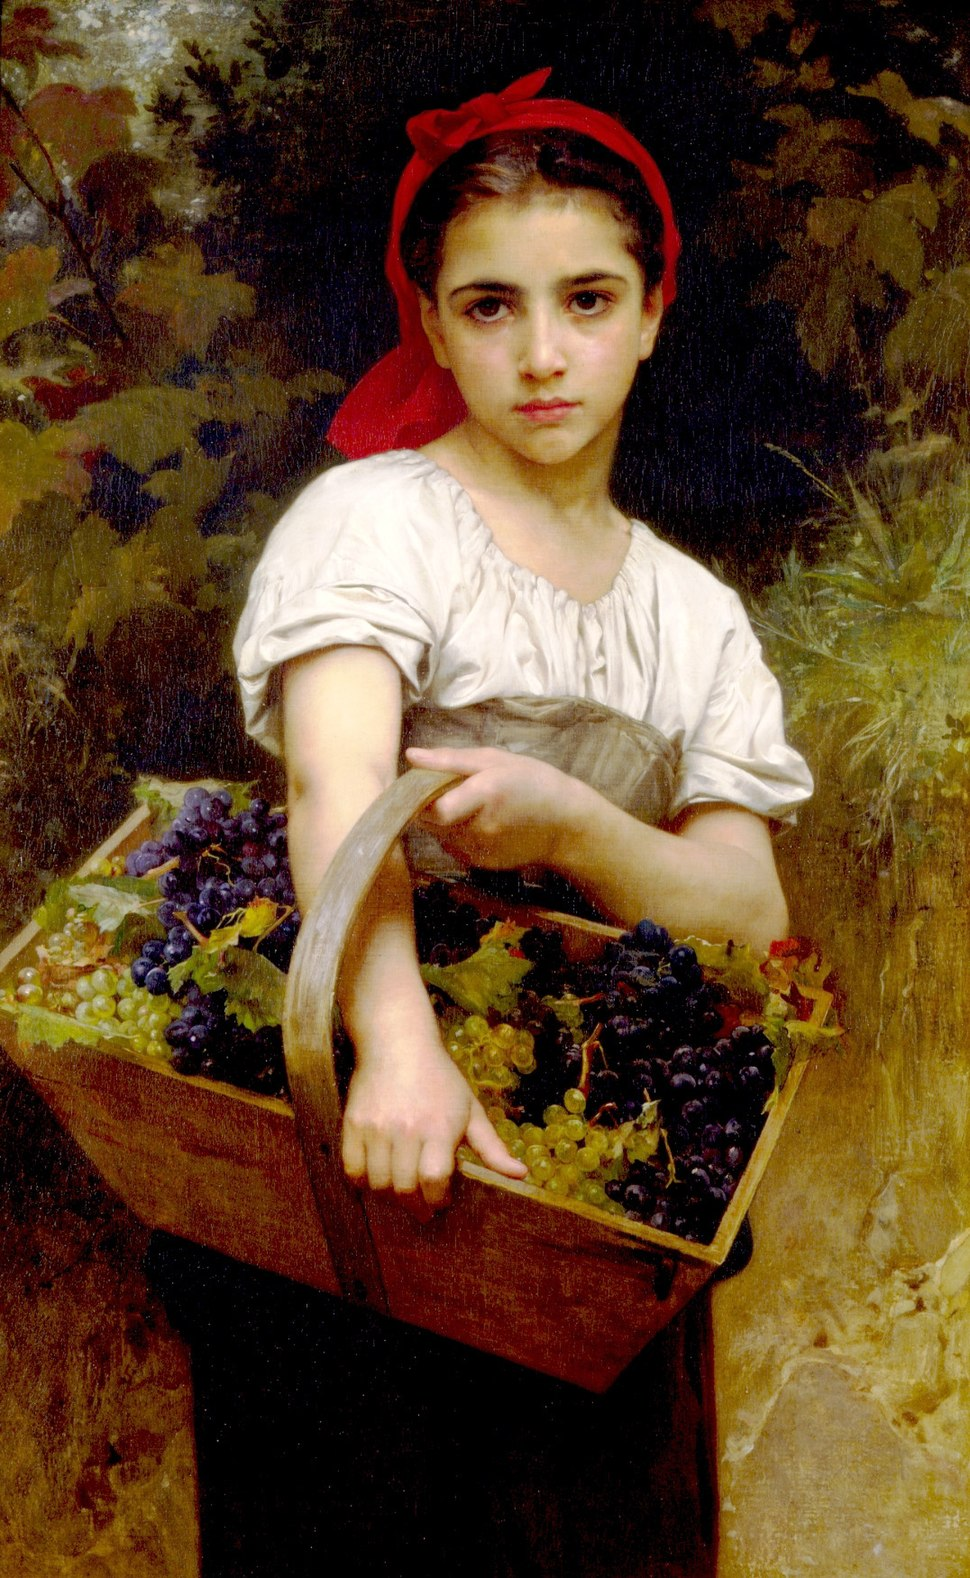 William-adolphe bouguereau the grape picker